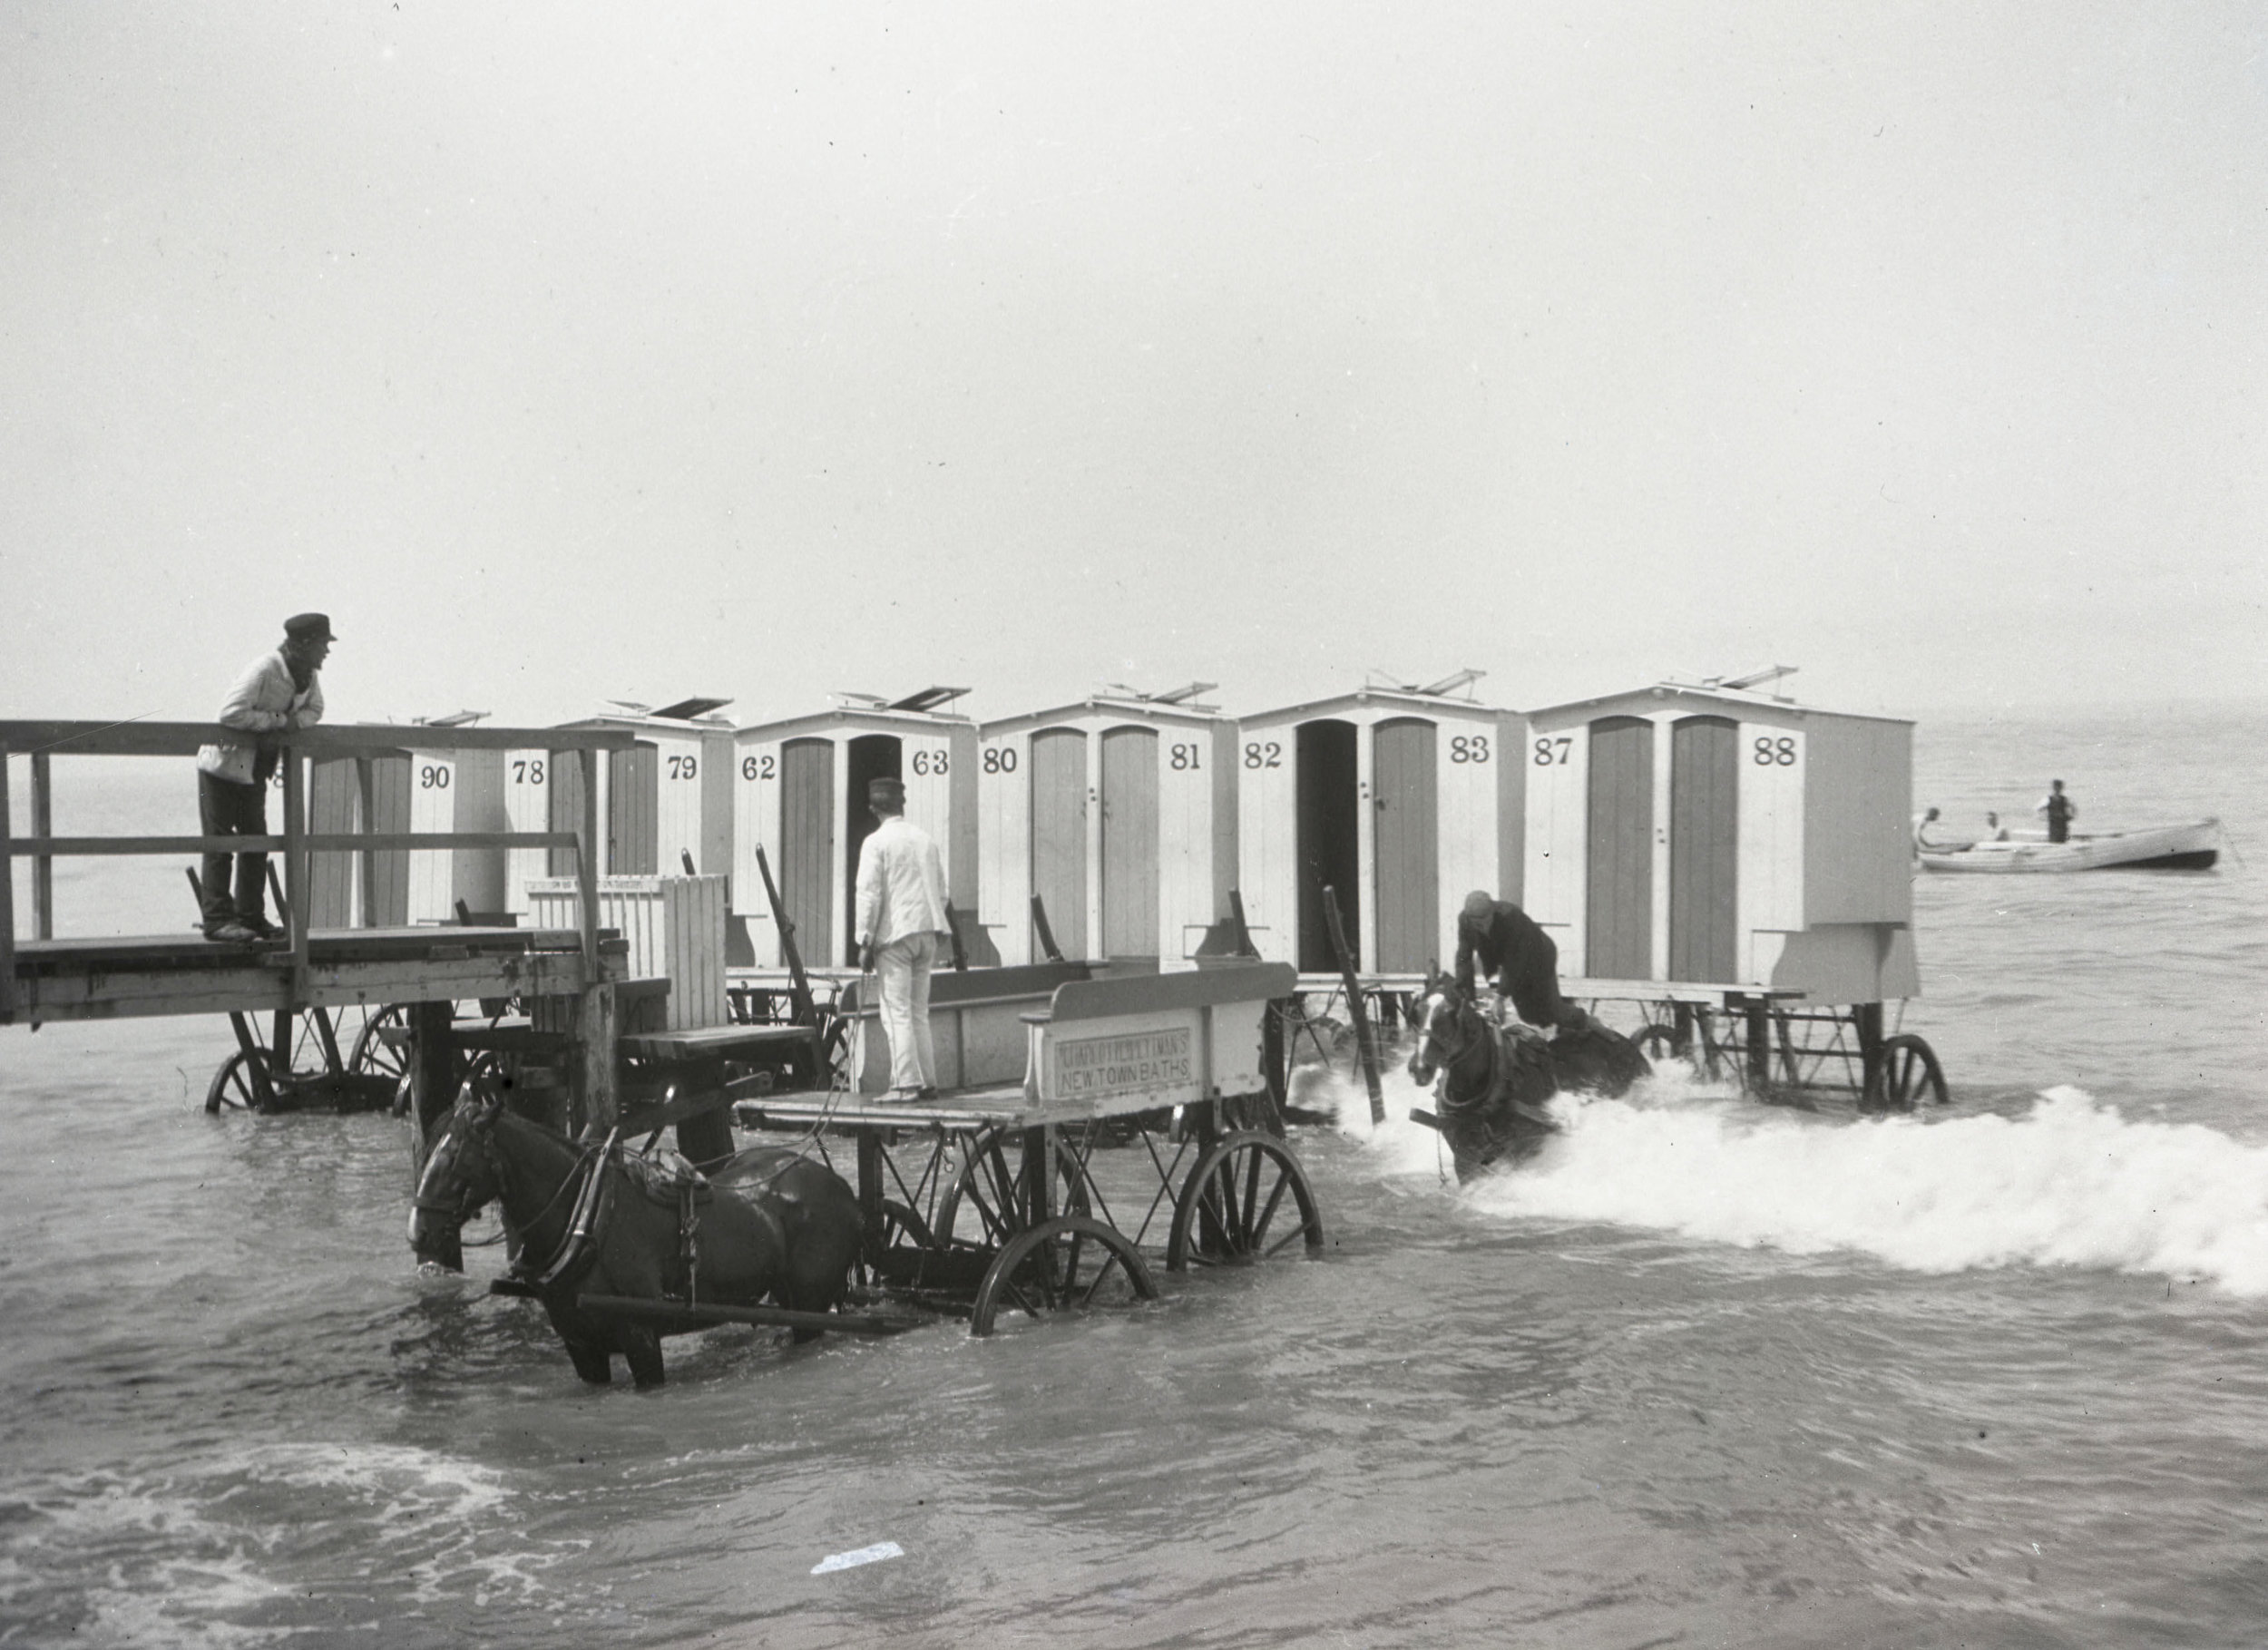 Bathing machines at Margate Beach - these carts were rolled into the sea with horses and served to allow women to preserve their modesty when swimming